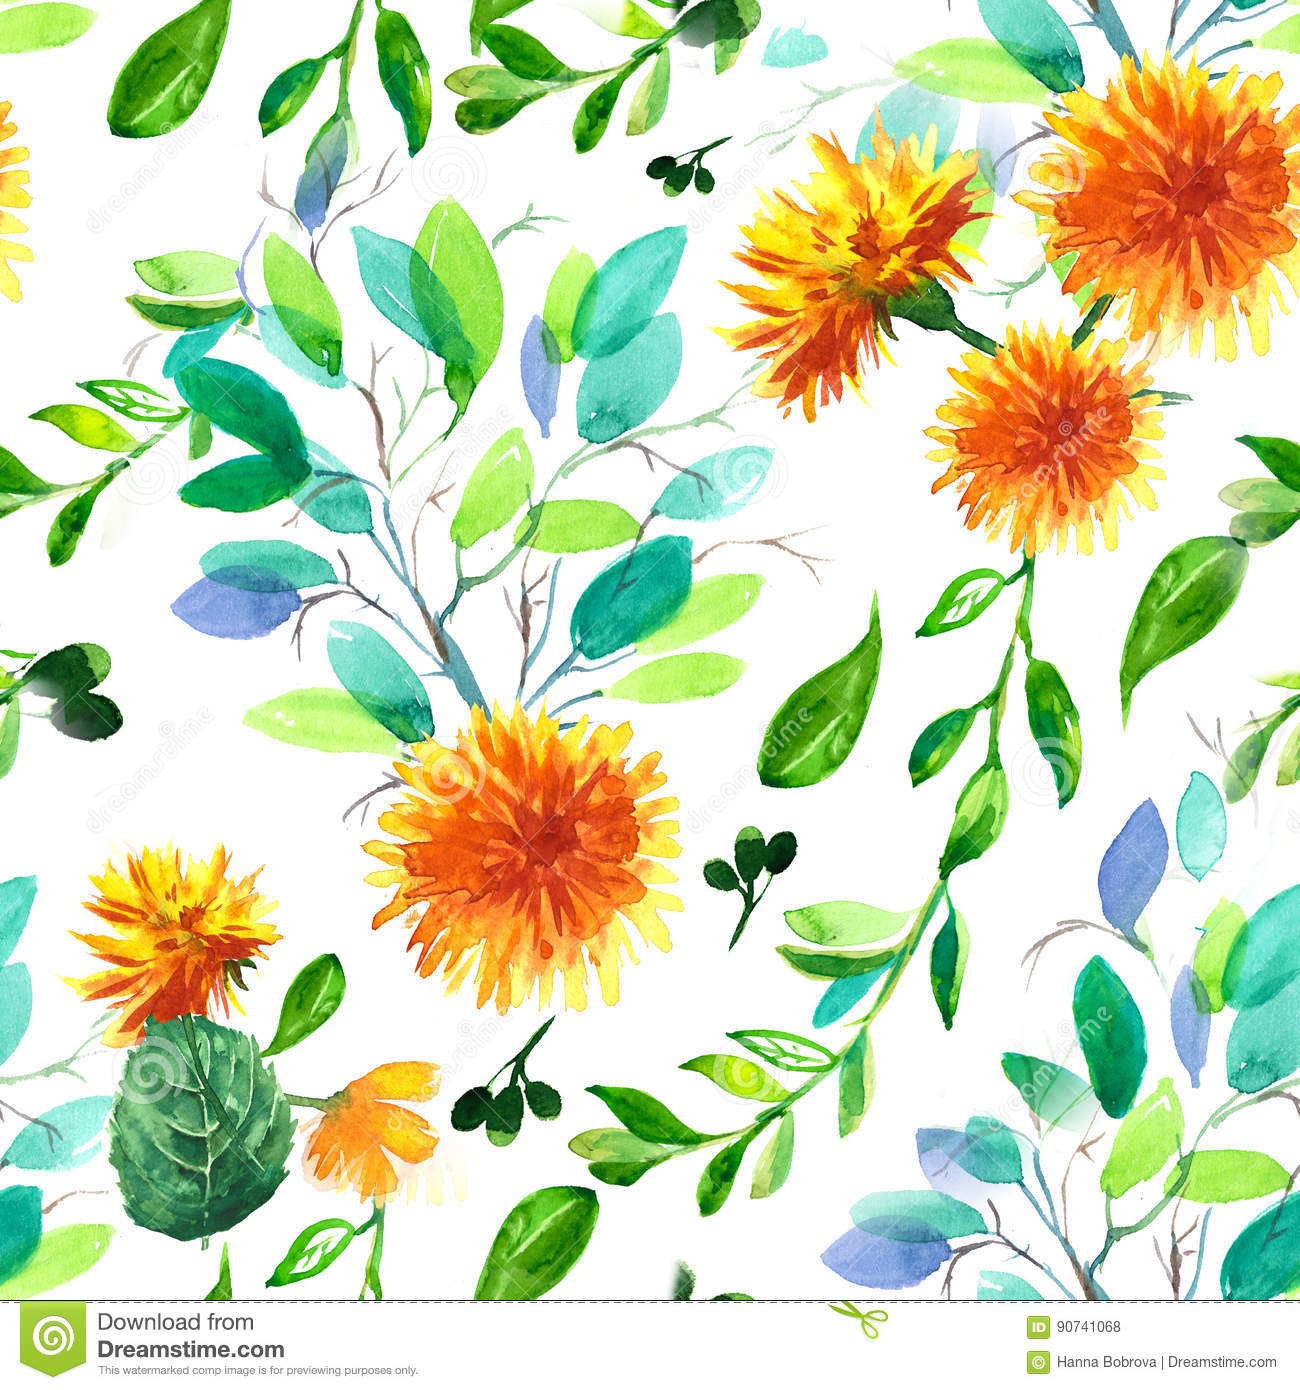 Watercolor Seamless Pattern With Dandelion And Leaves Design For